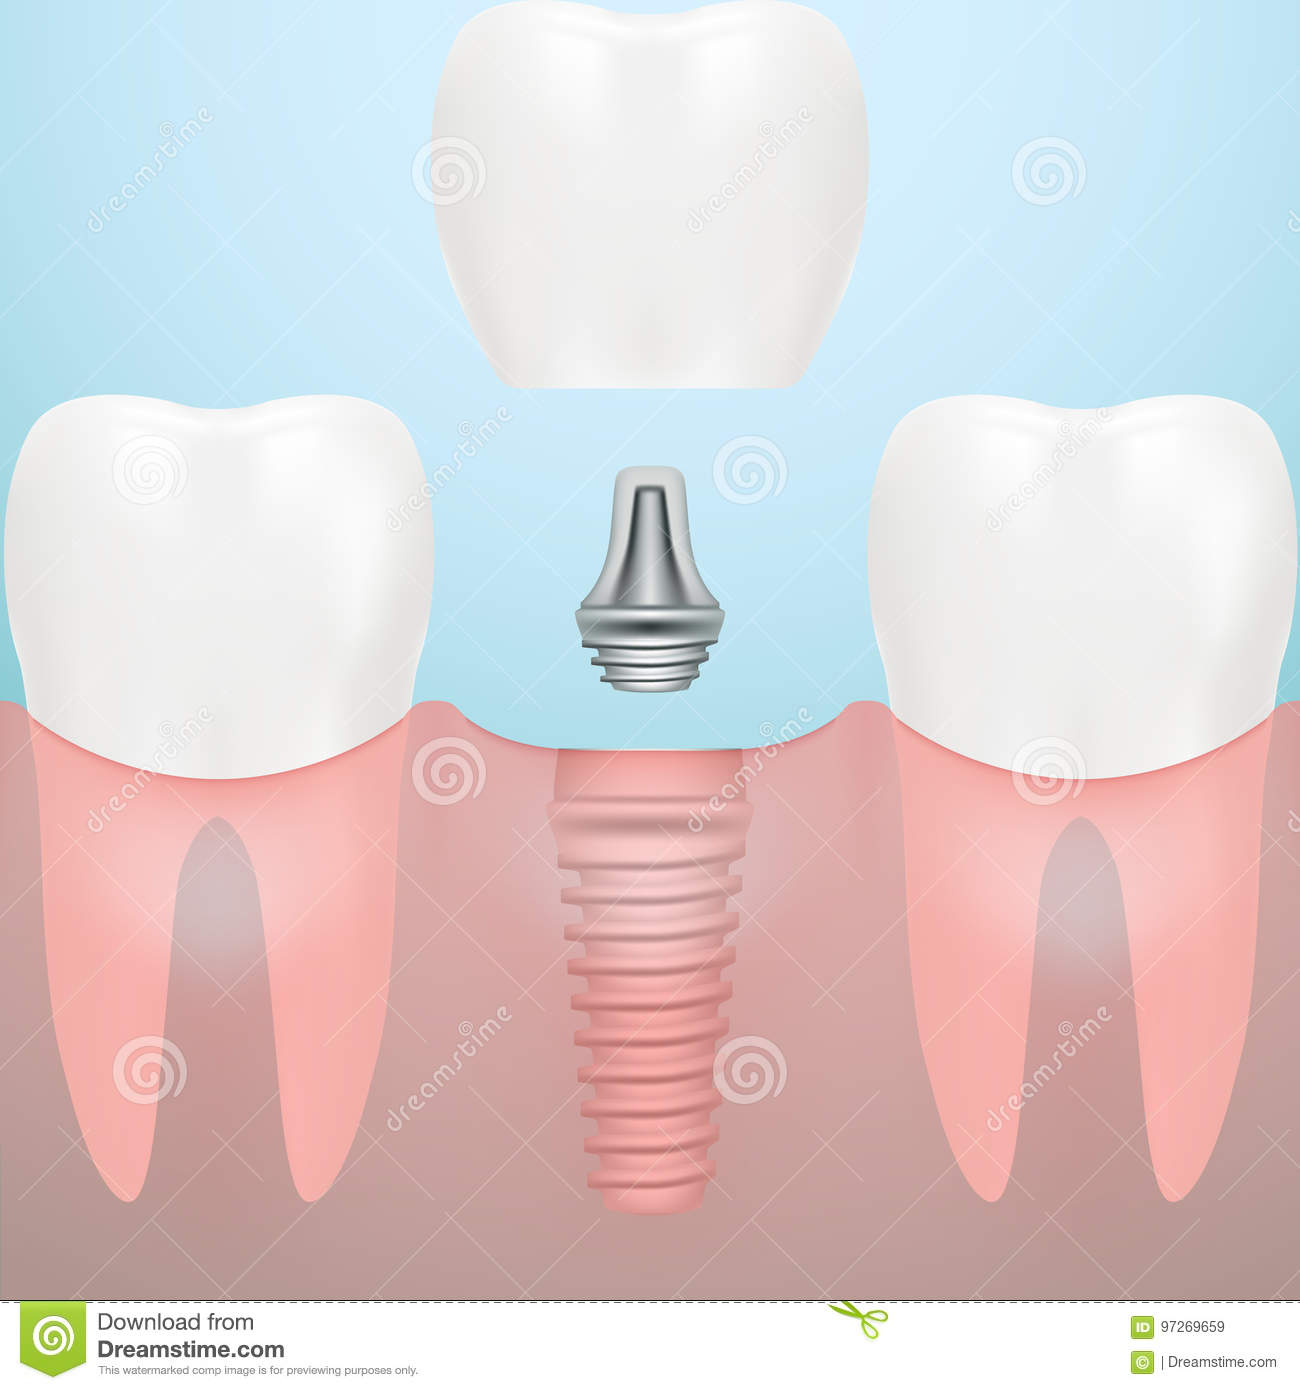 Human Teeth And Dental Implant Isolated On A Background ... Dental Implant Background